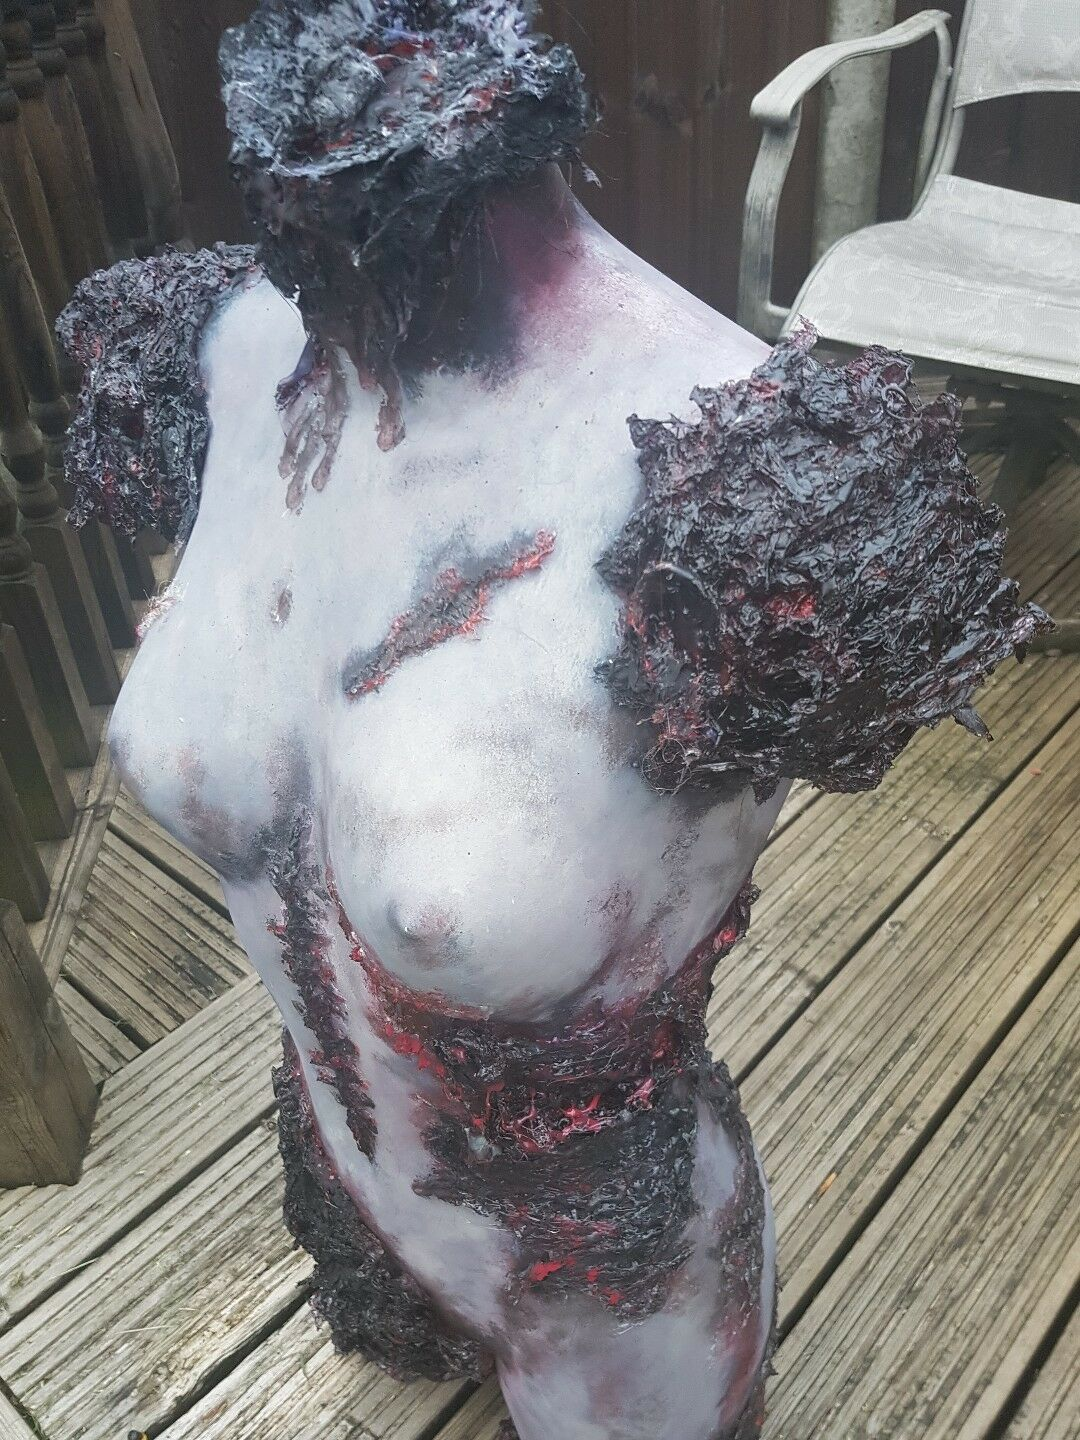 SEXY ZOMBIE GIRL GOTHIC HALLOWEEN CORPSE HORROR PROP FULL GrößeD